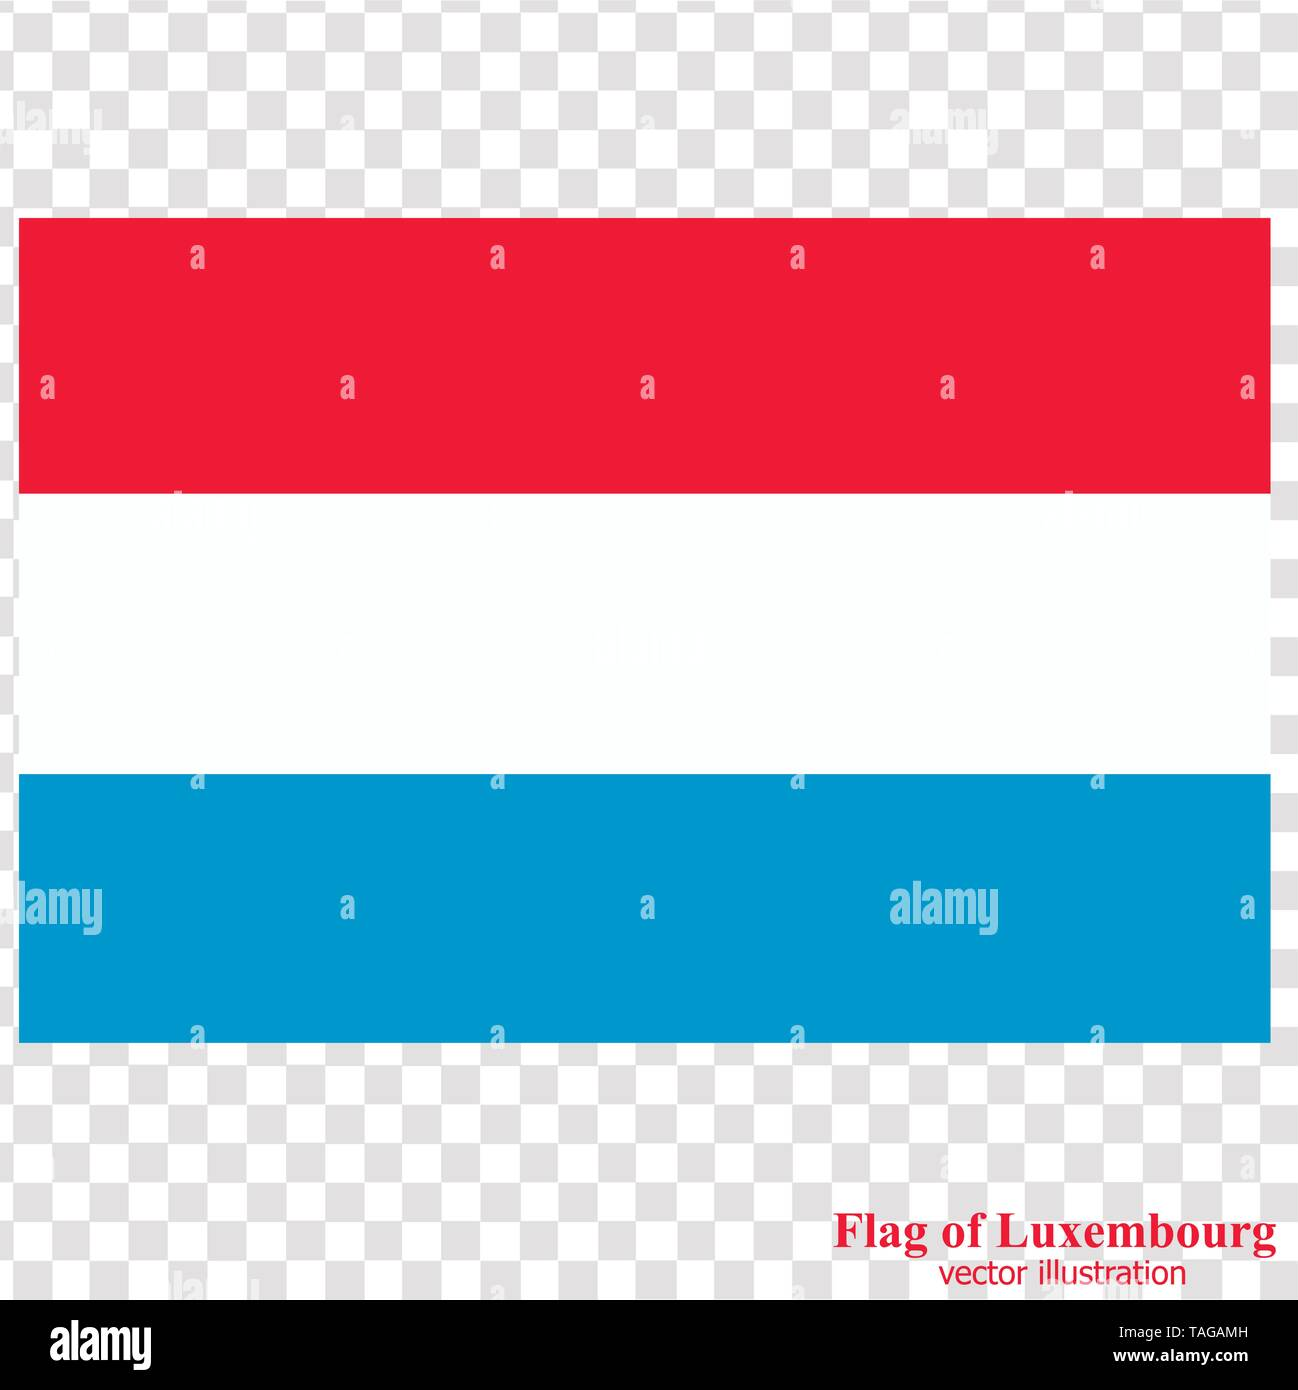 Banner with flag of Luxembourg. Colorful illustration with flag for web design. Illustration with transparent background. - Stock Image